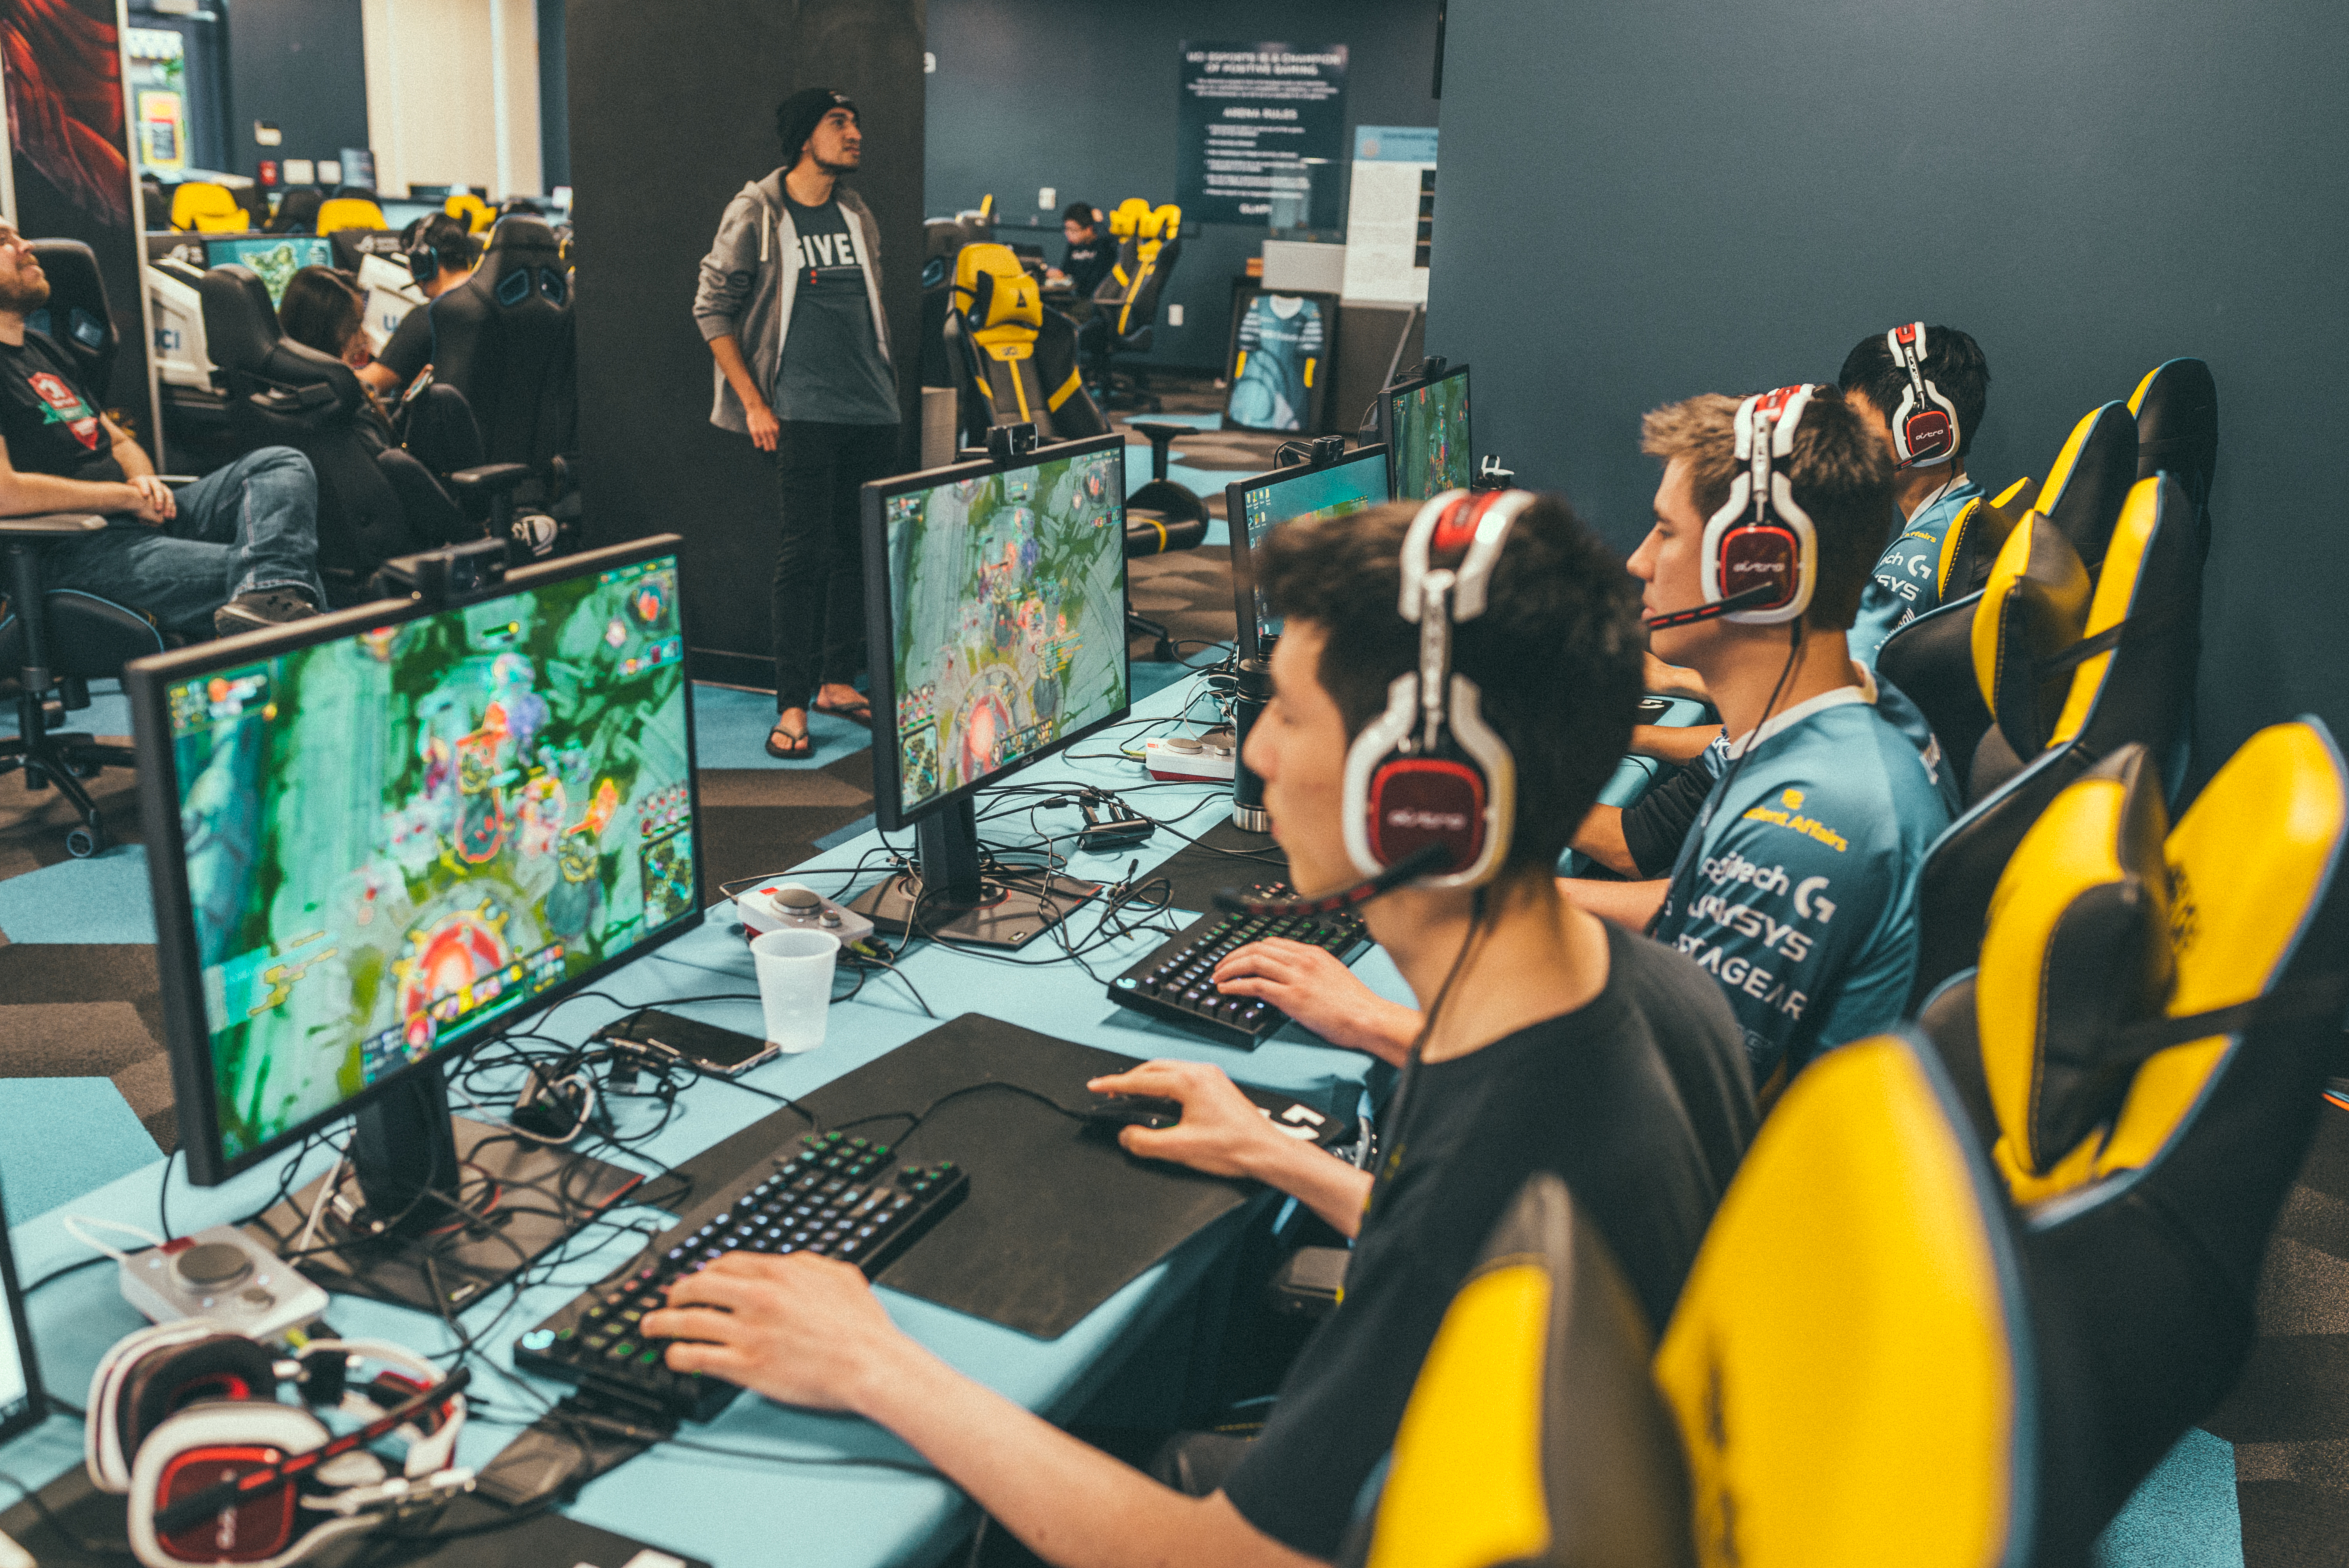 A sponsor has provided the University of California, Irvine's esports teams with some exercise equipment for players who want to more than stretch during breaks.